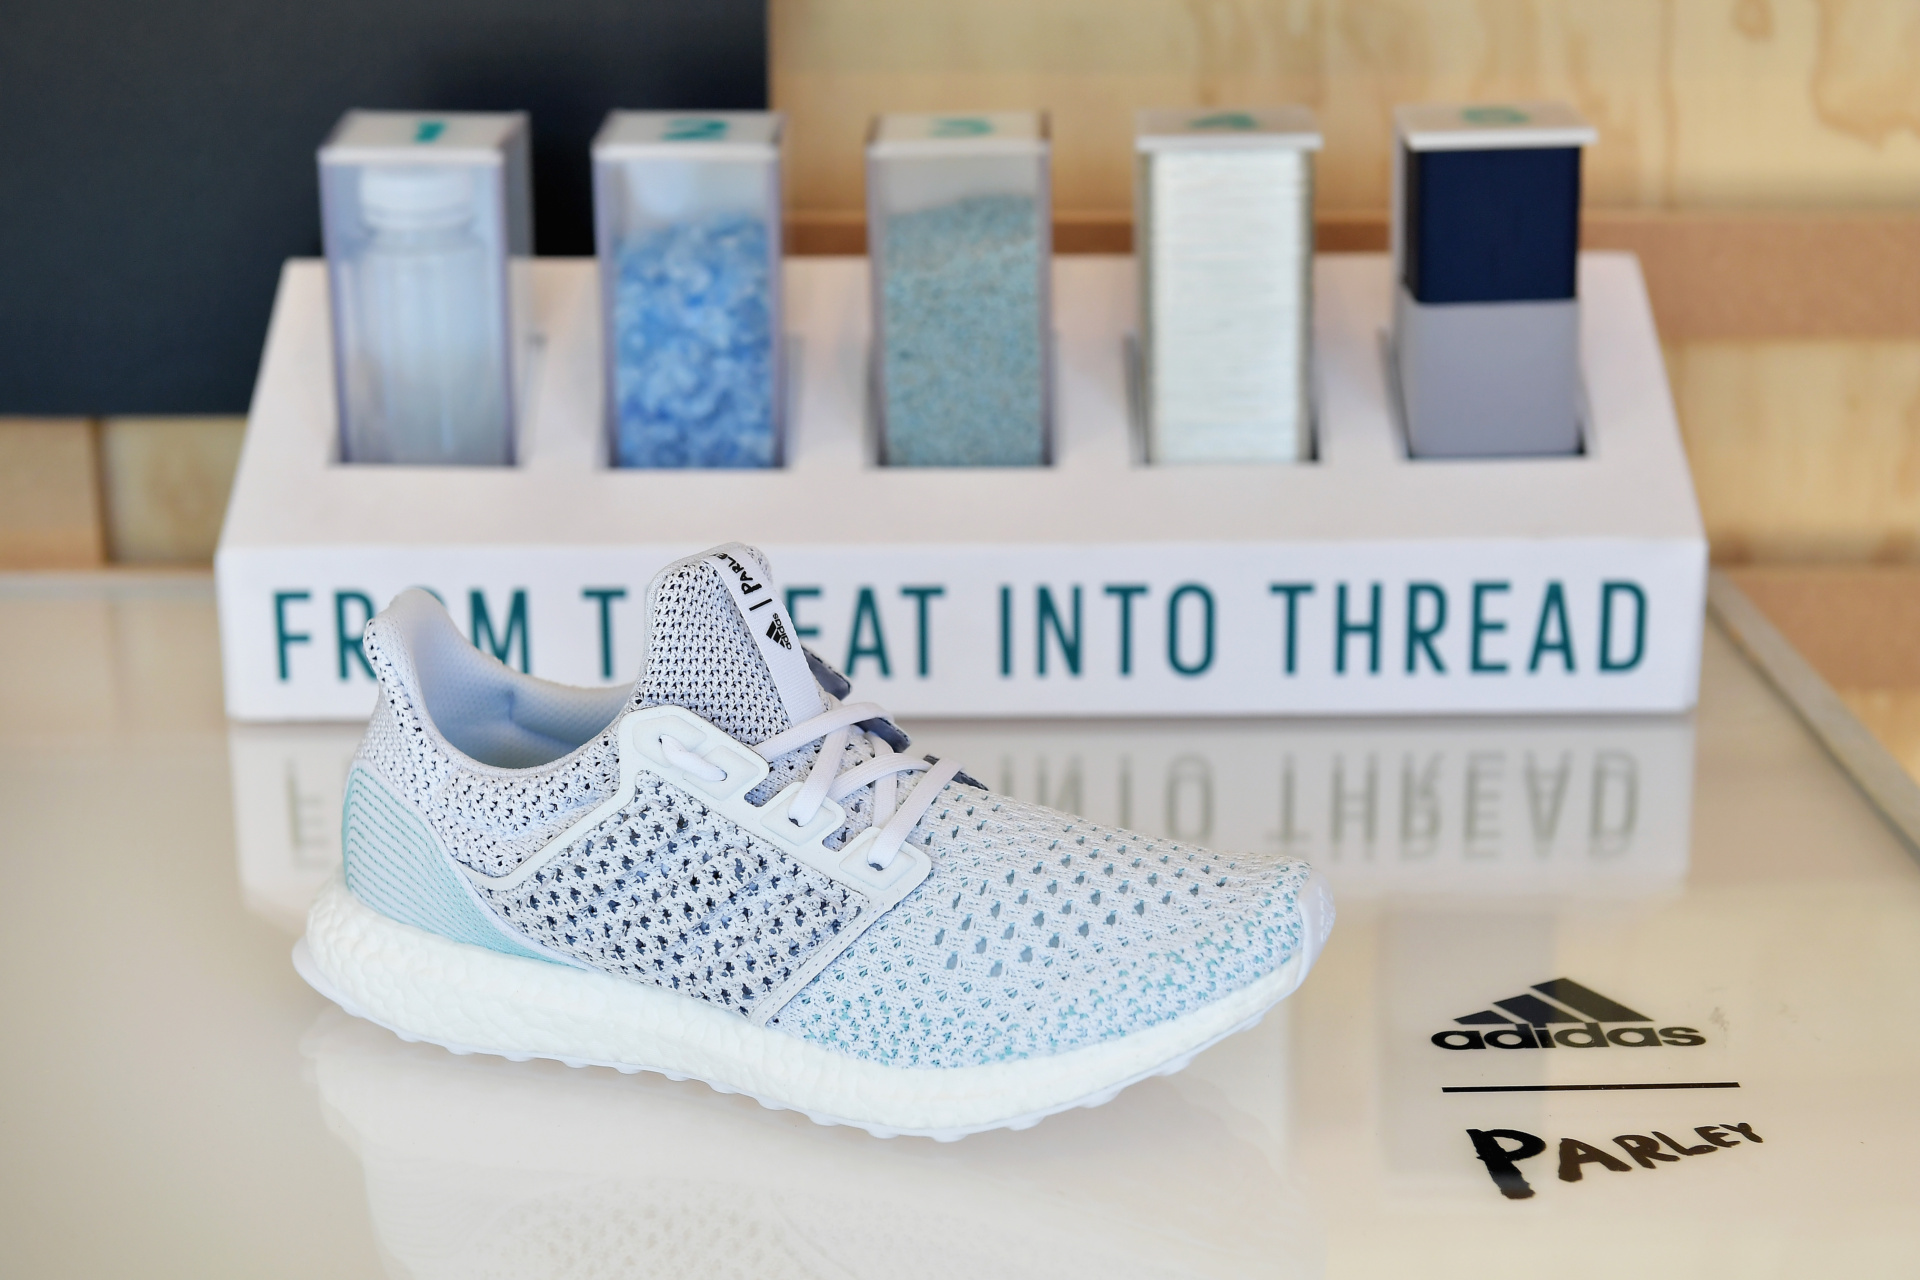 9bb801017dcdd8 adidas has always been one of the few major companies that strives to  become more sustainable and eco-friendly all-around (One of the brand s  sustainability ...